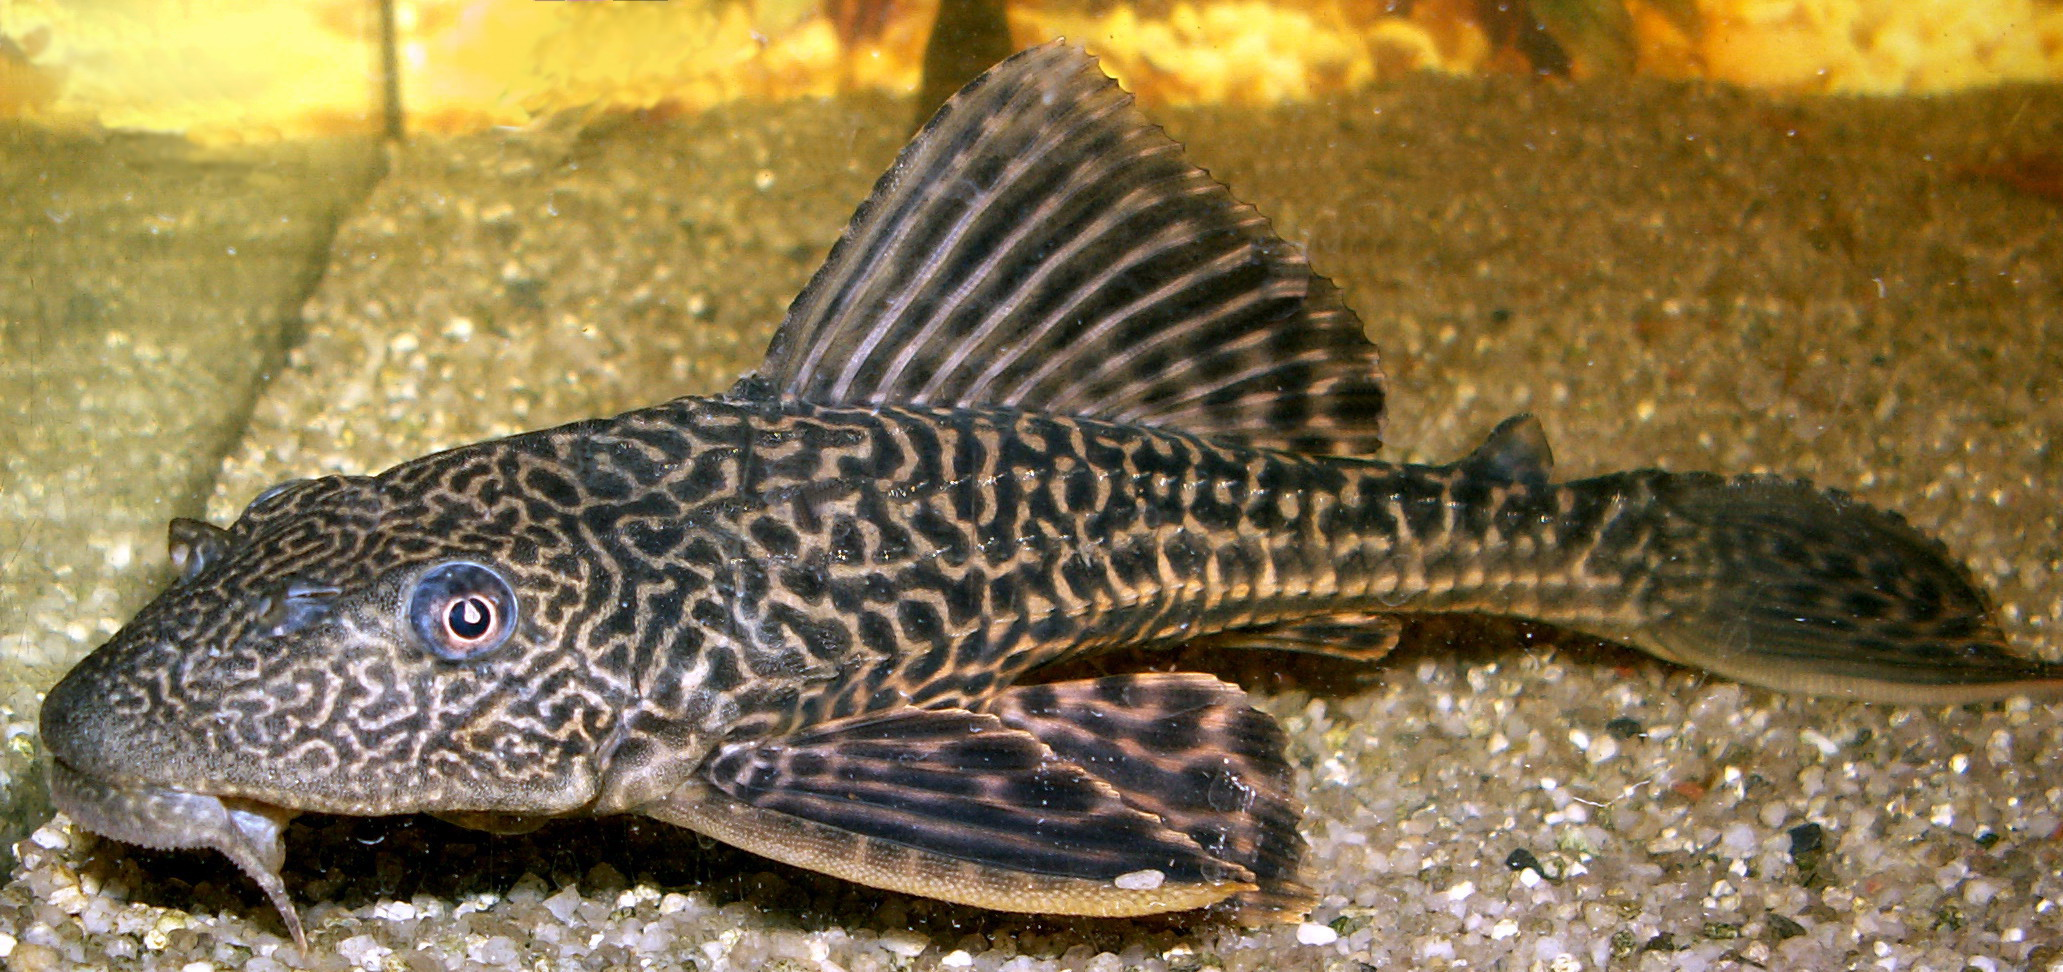 Google images for Sucker fish food